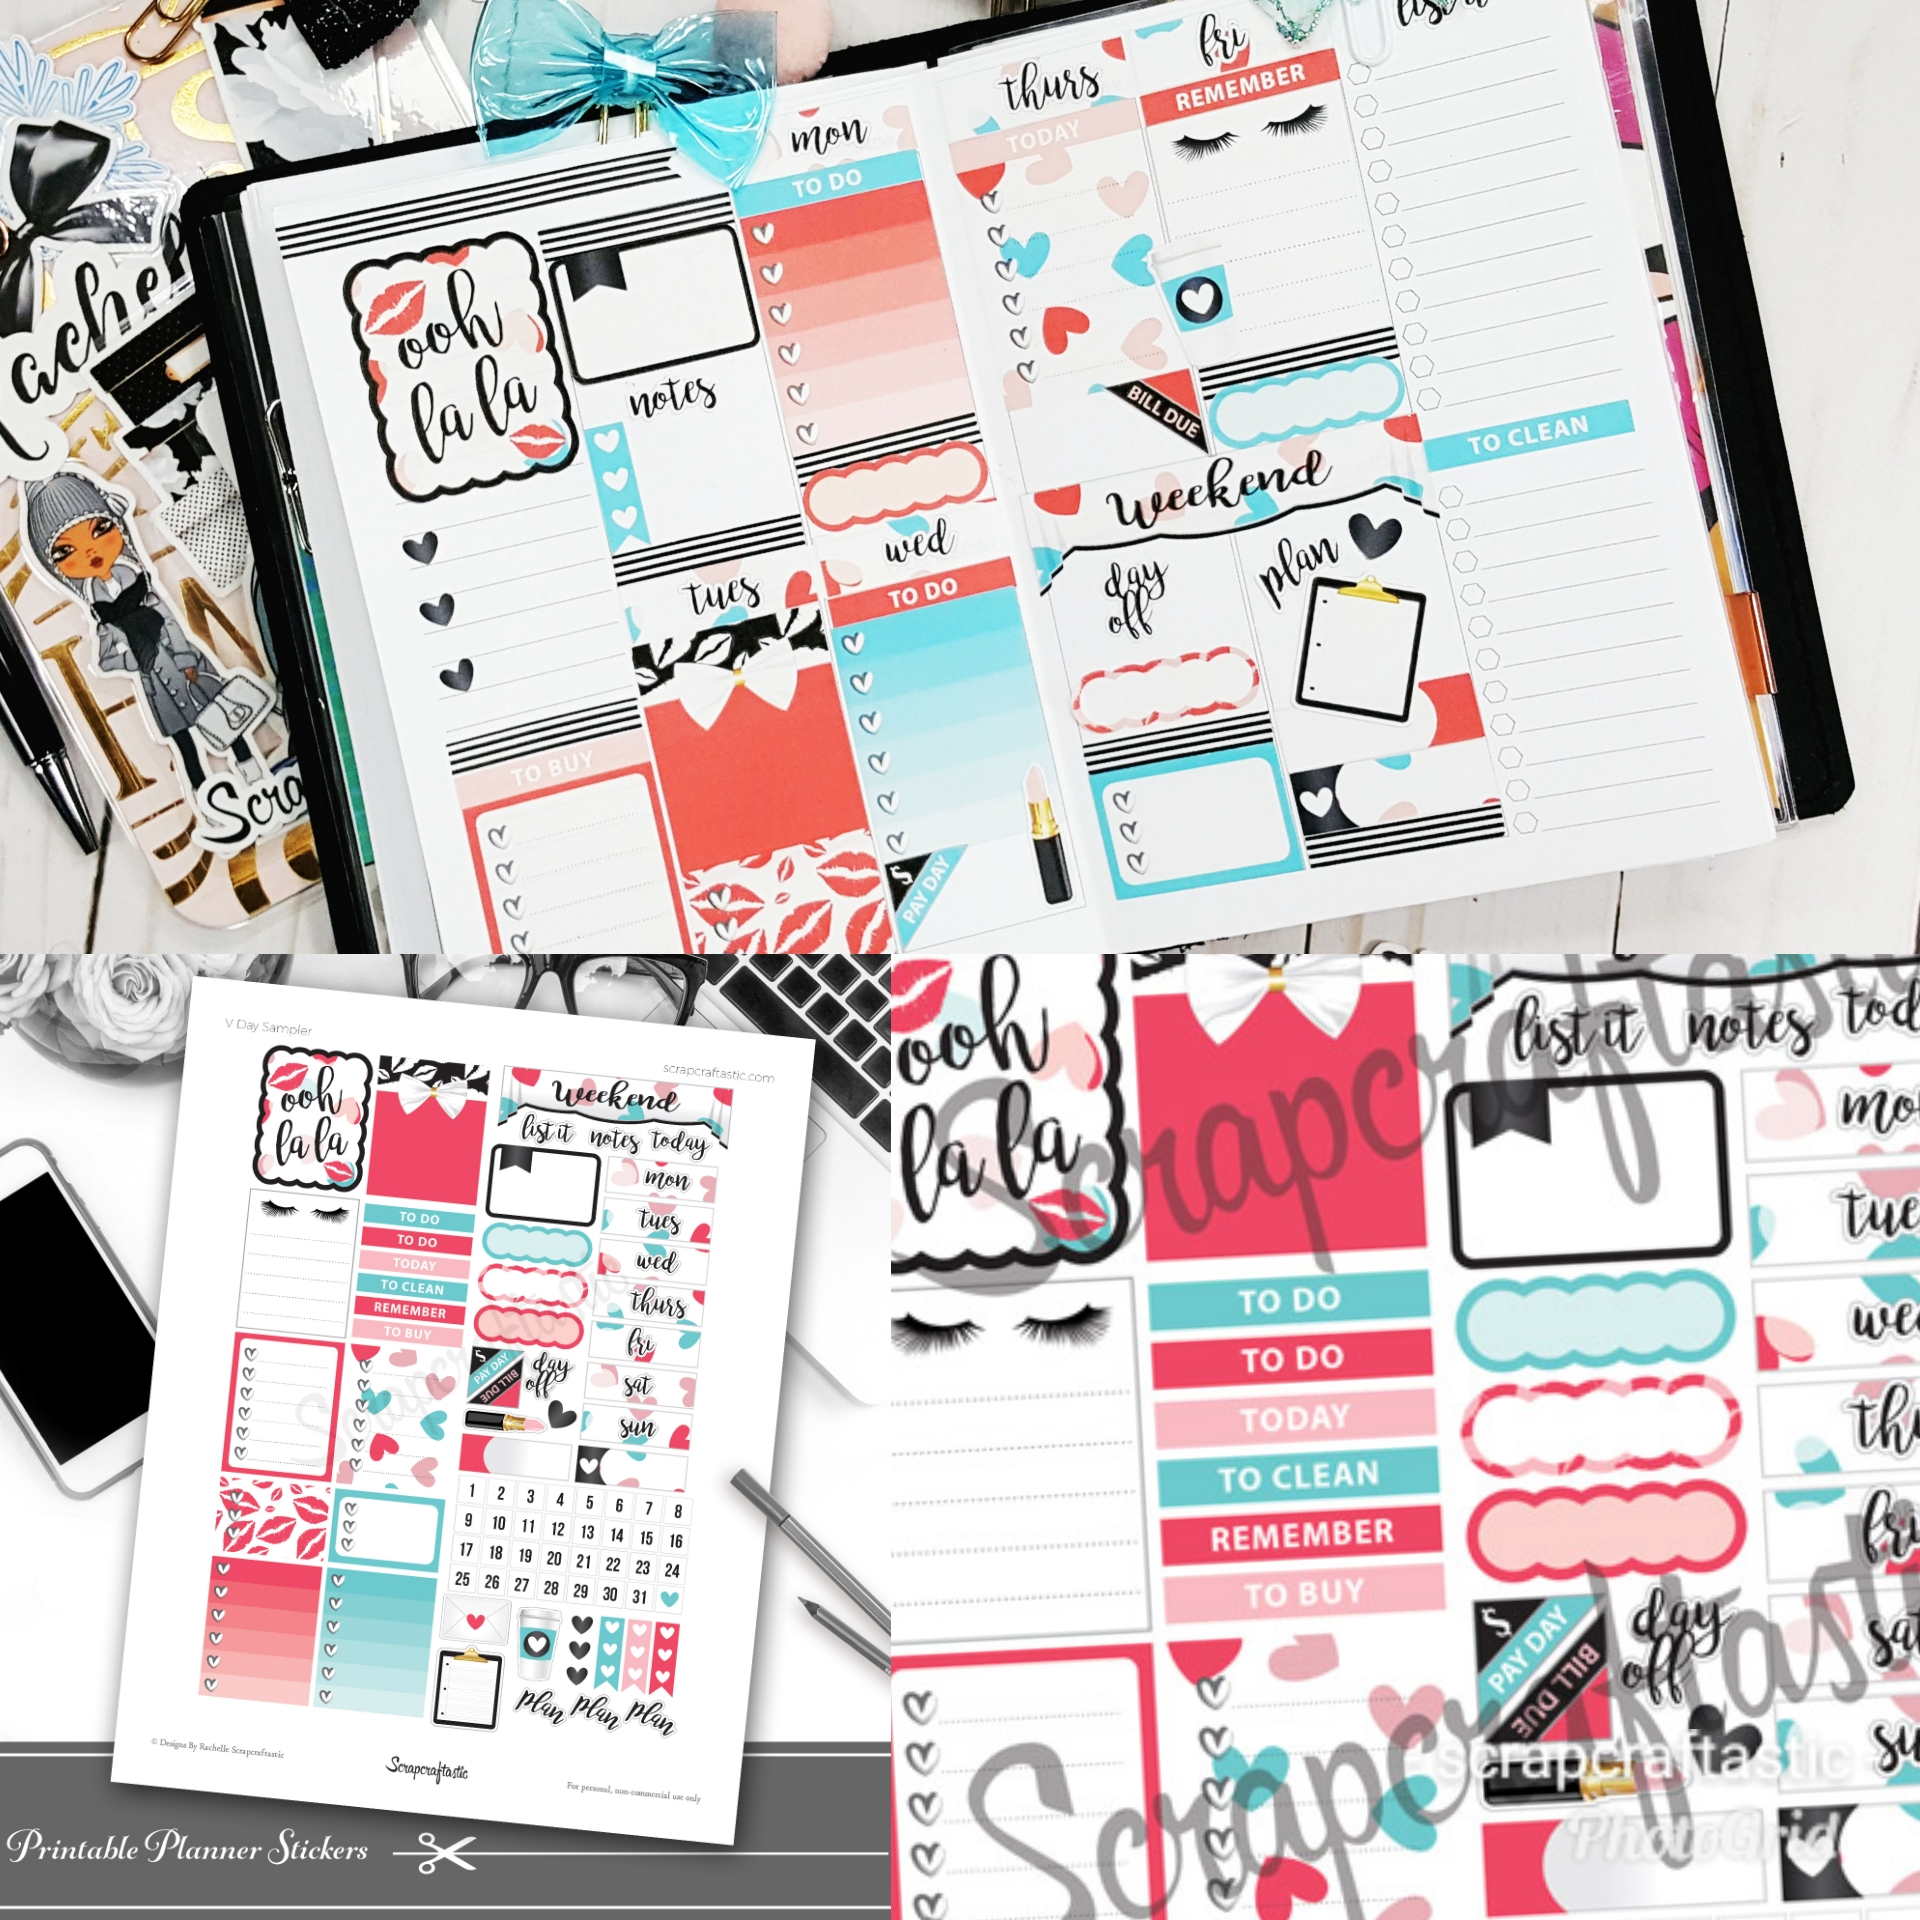 V Day Printable Planner Sticker Sampler